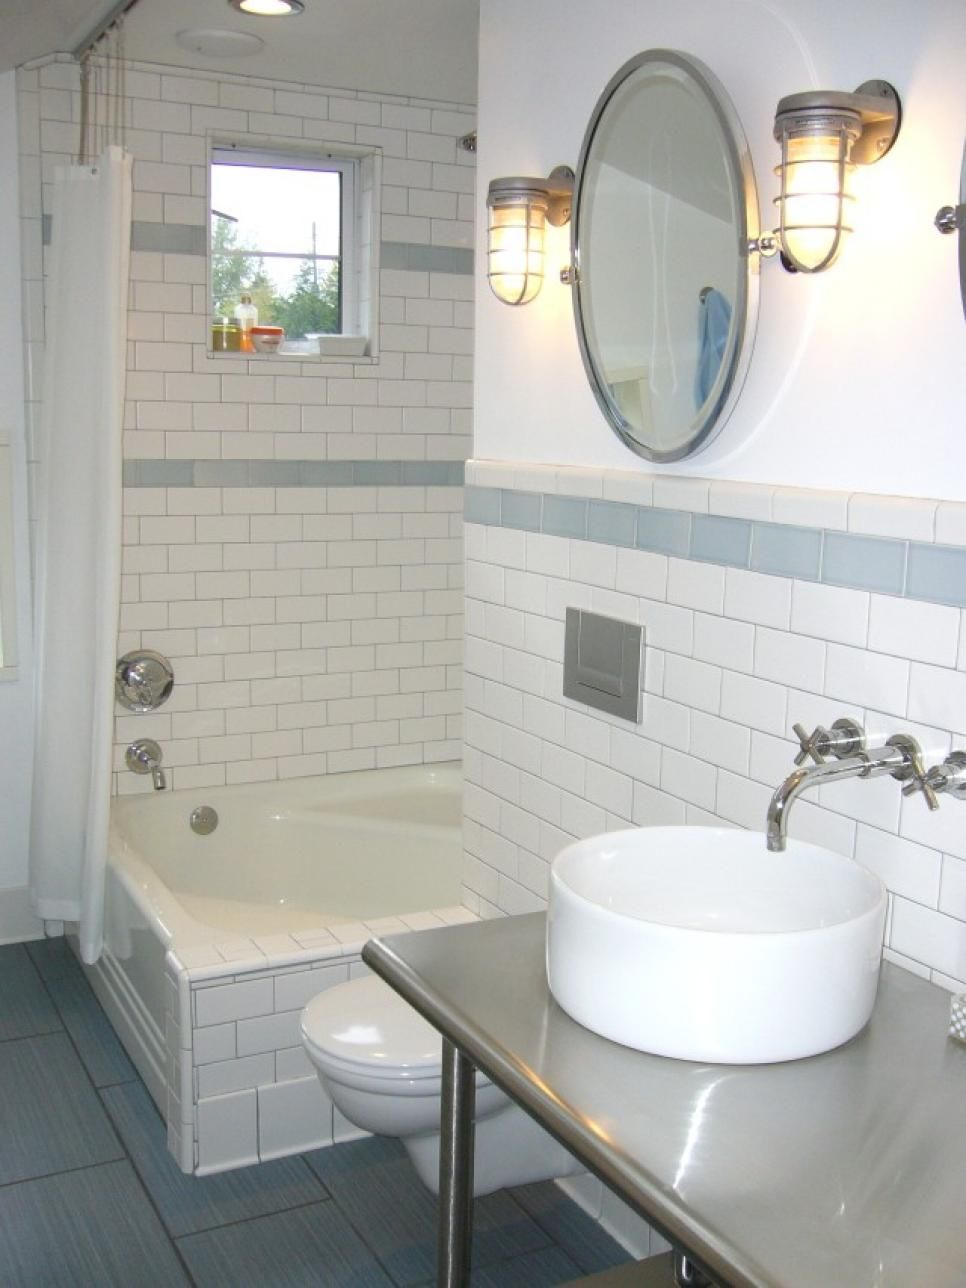 Beautiful Bathroom Redos on a Budget | Innovative ideas, Bath shower ...